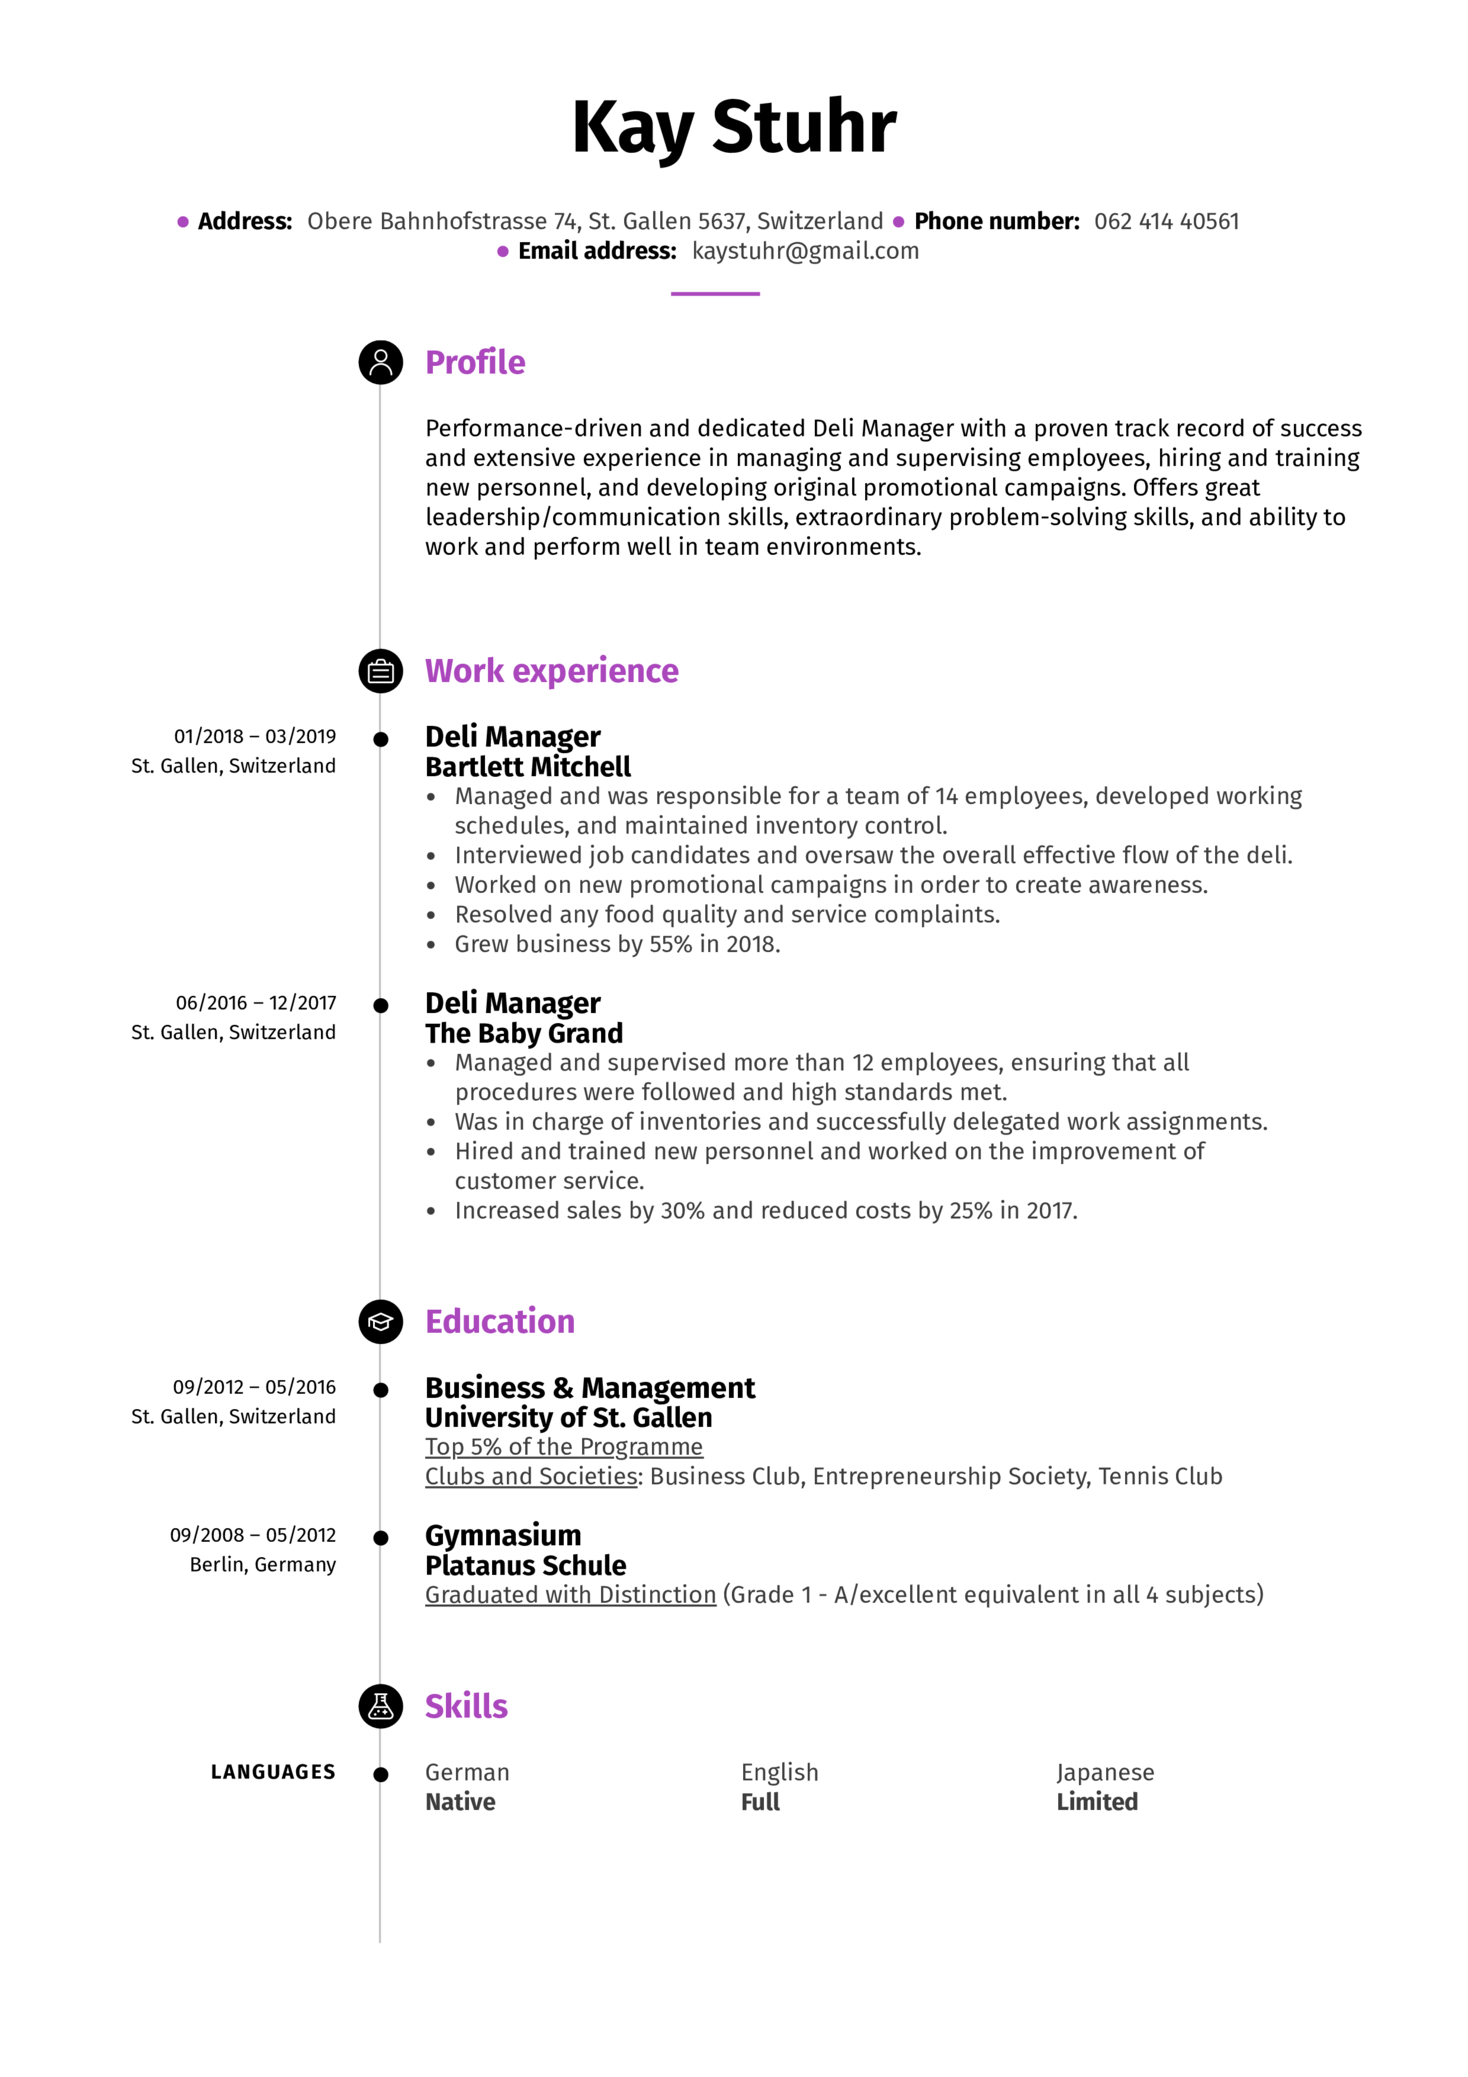 Deli Manager Resume Example (Part 1)